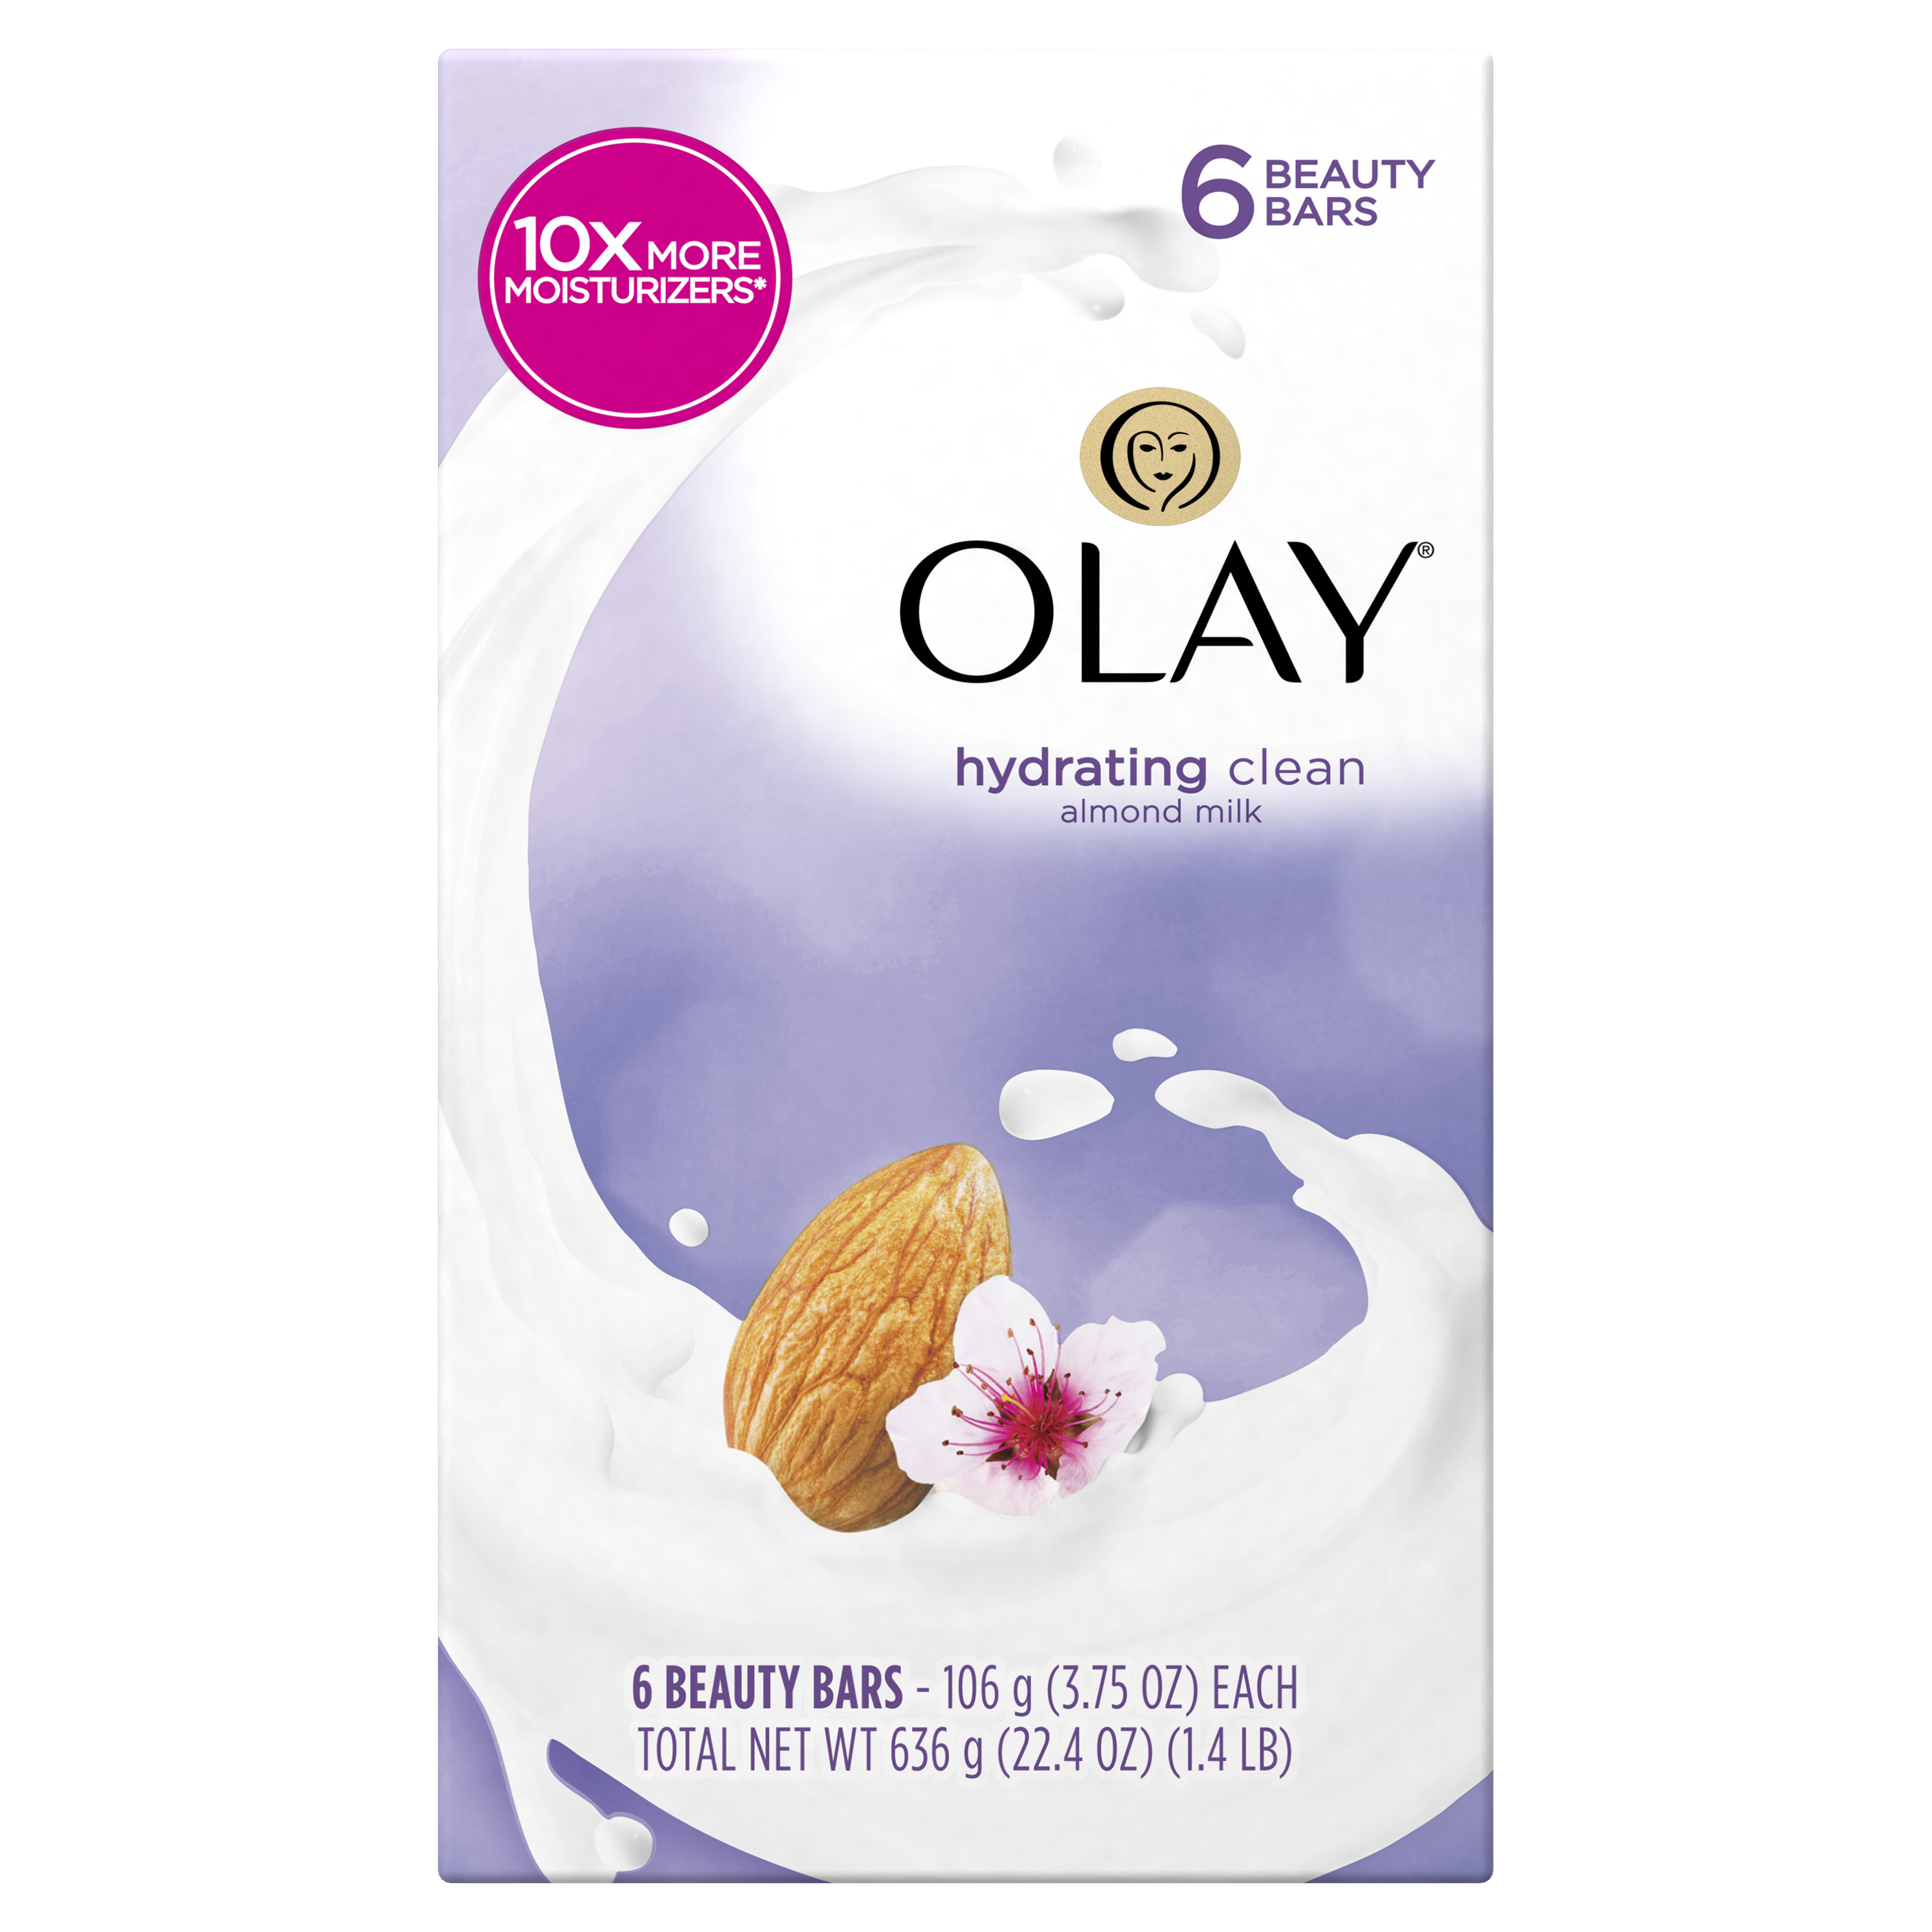 Olay Hydrating Clean Beauty Bars, Almond Milk 3.75 oz, 6 Count